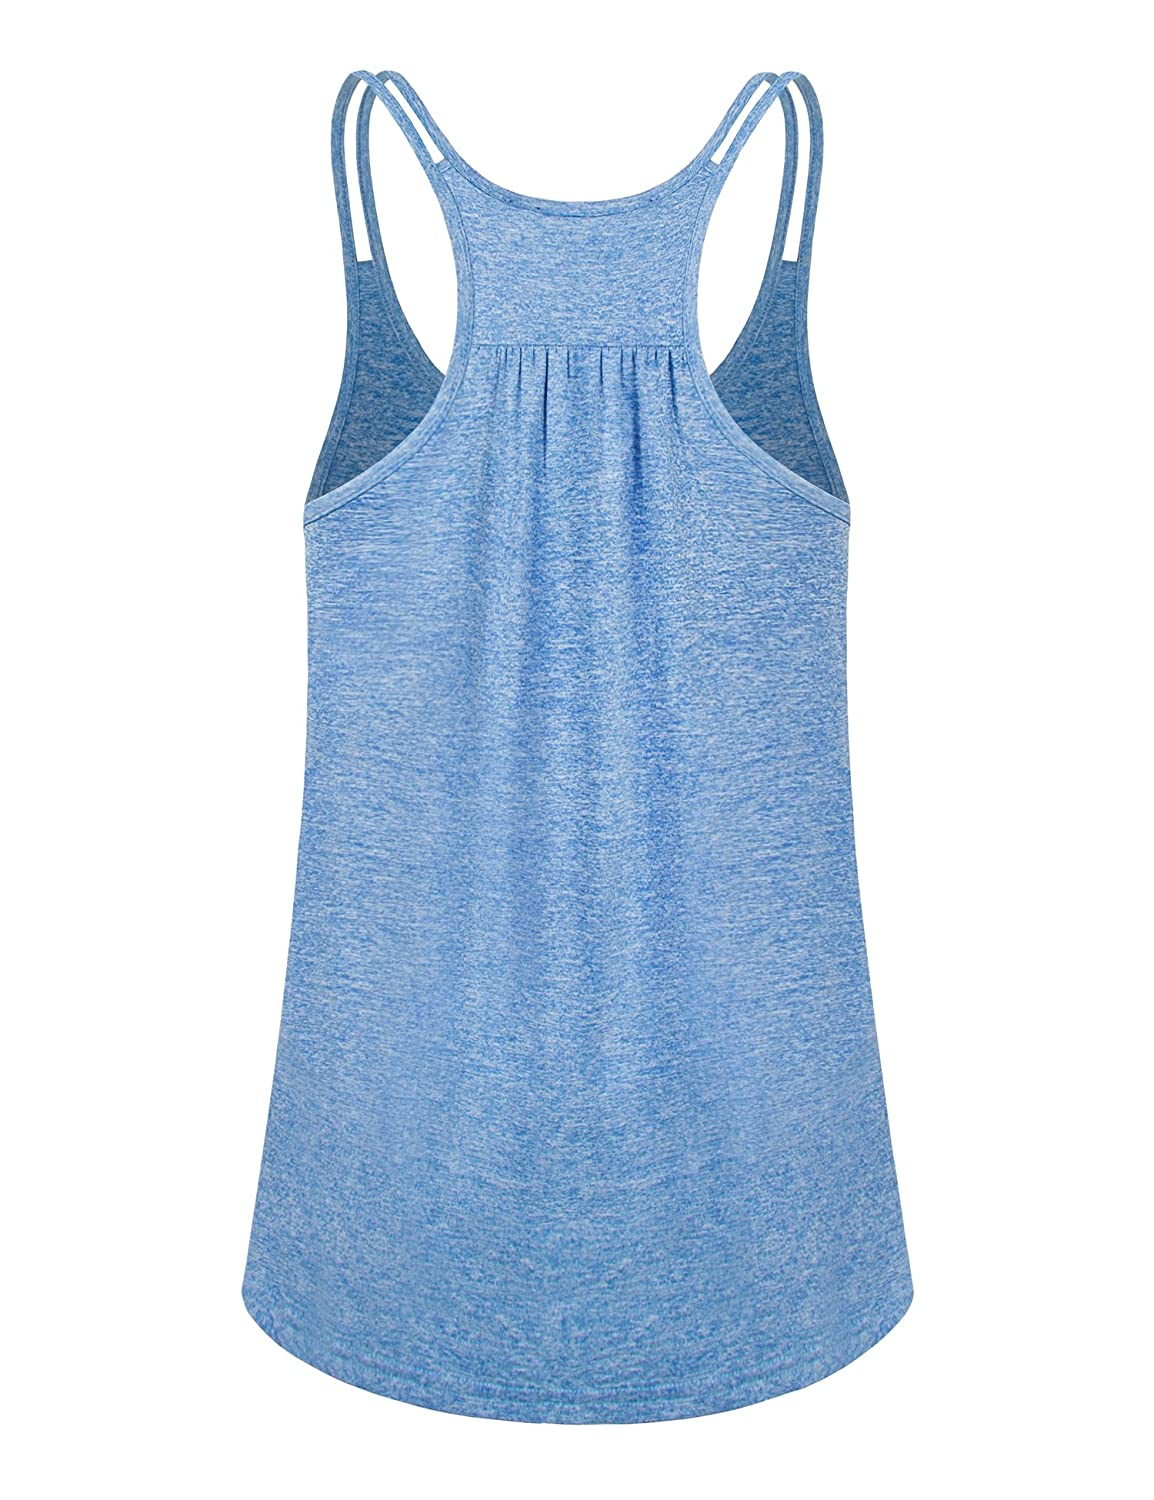 693648faccbbf Amazon.com  Altelime Workout Tank Tops for Women